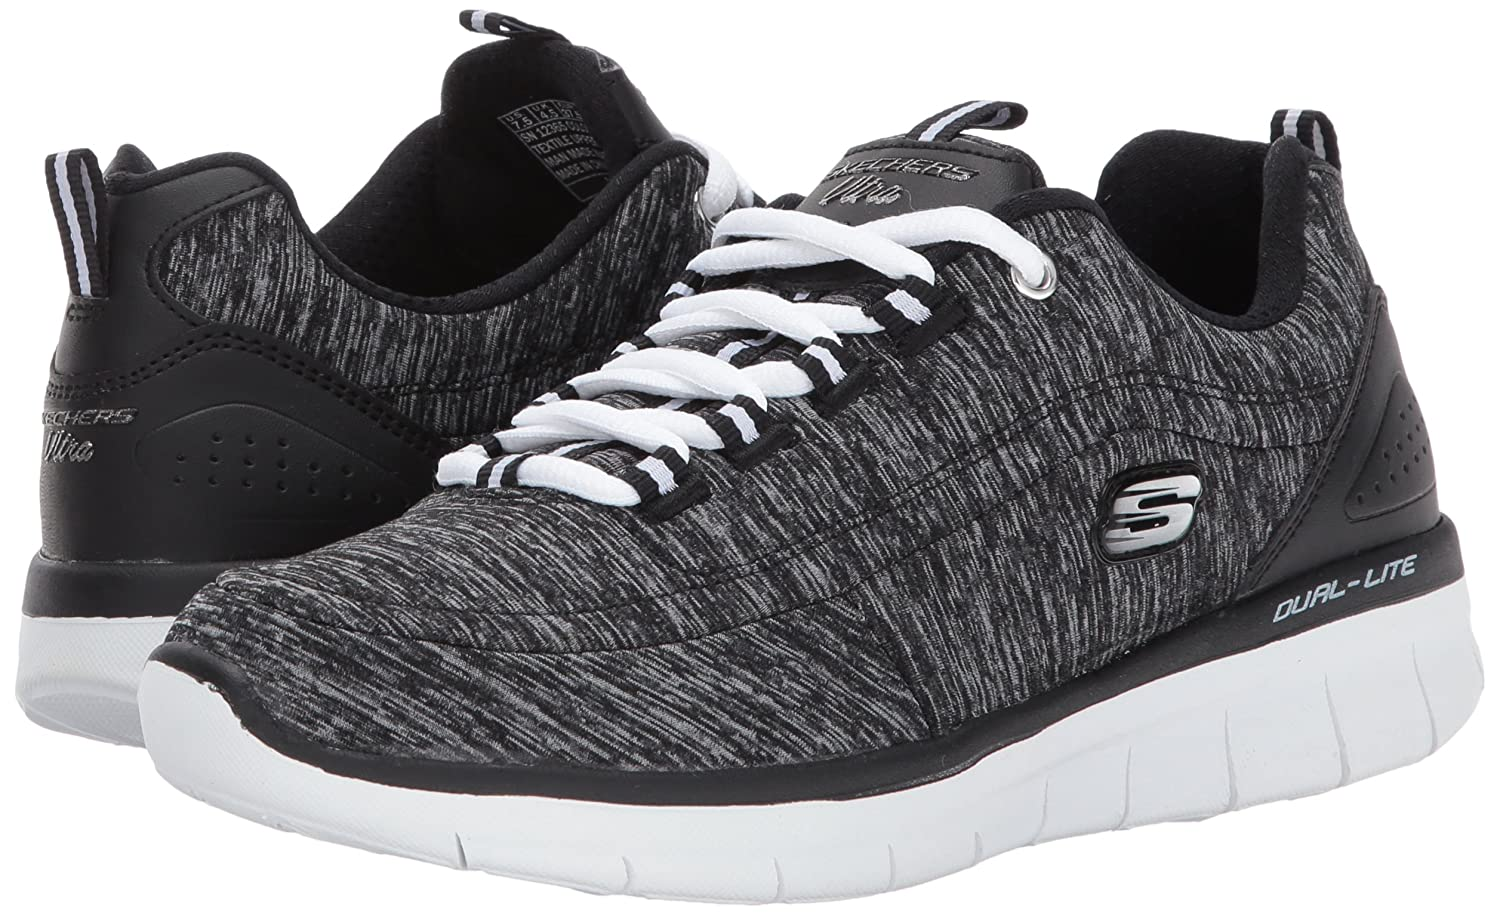 Skechers Women's Synergy 2.0 Headliner Fashion Sneaker